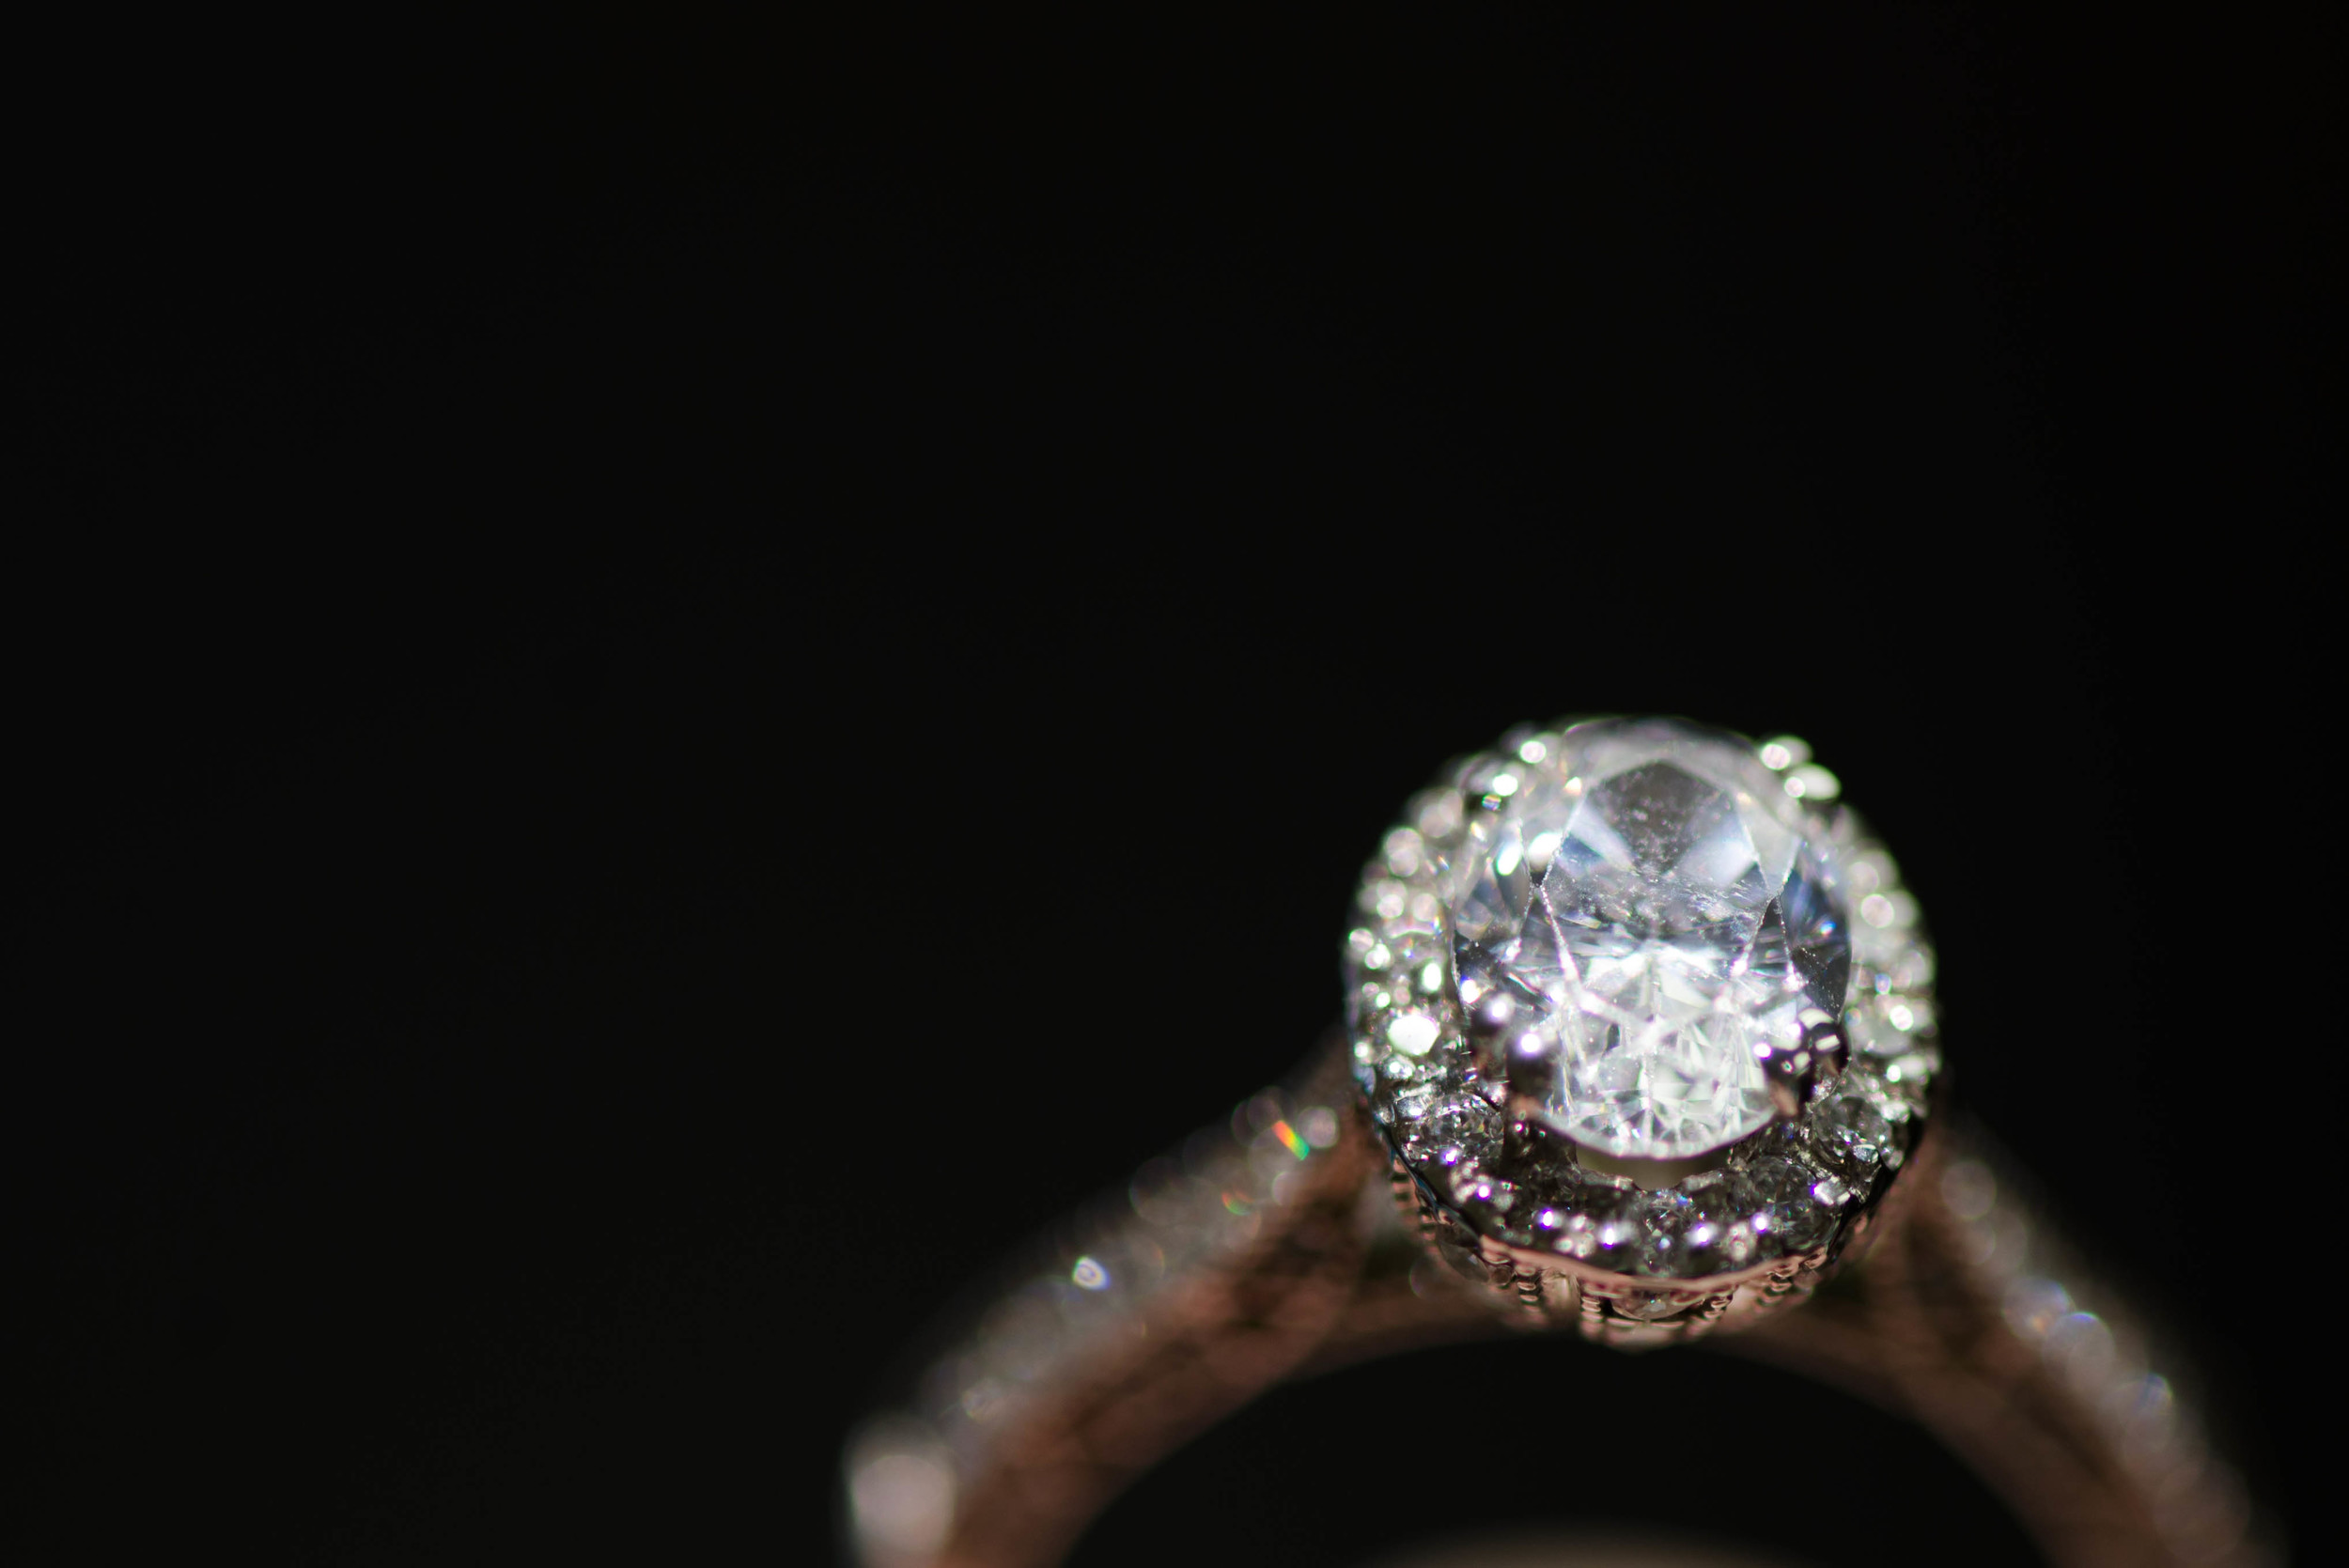 A stone for everyone, Becky carries a vast variety of engagement rings